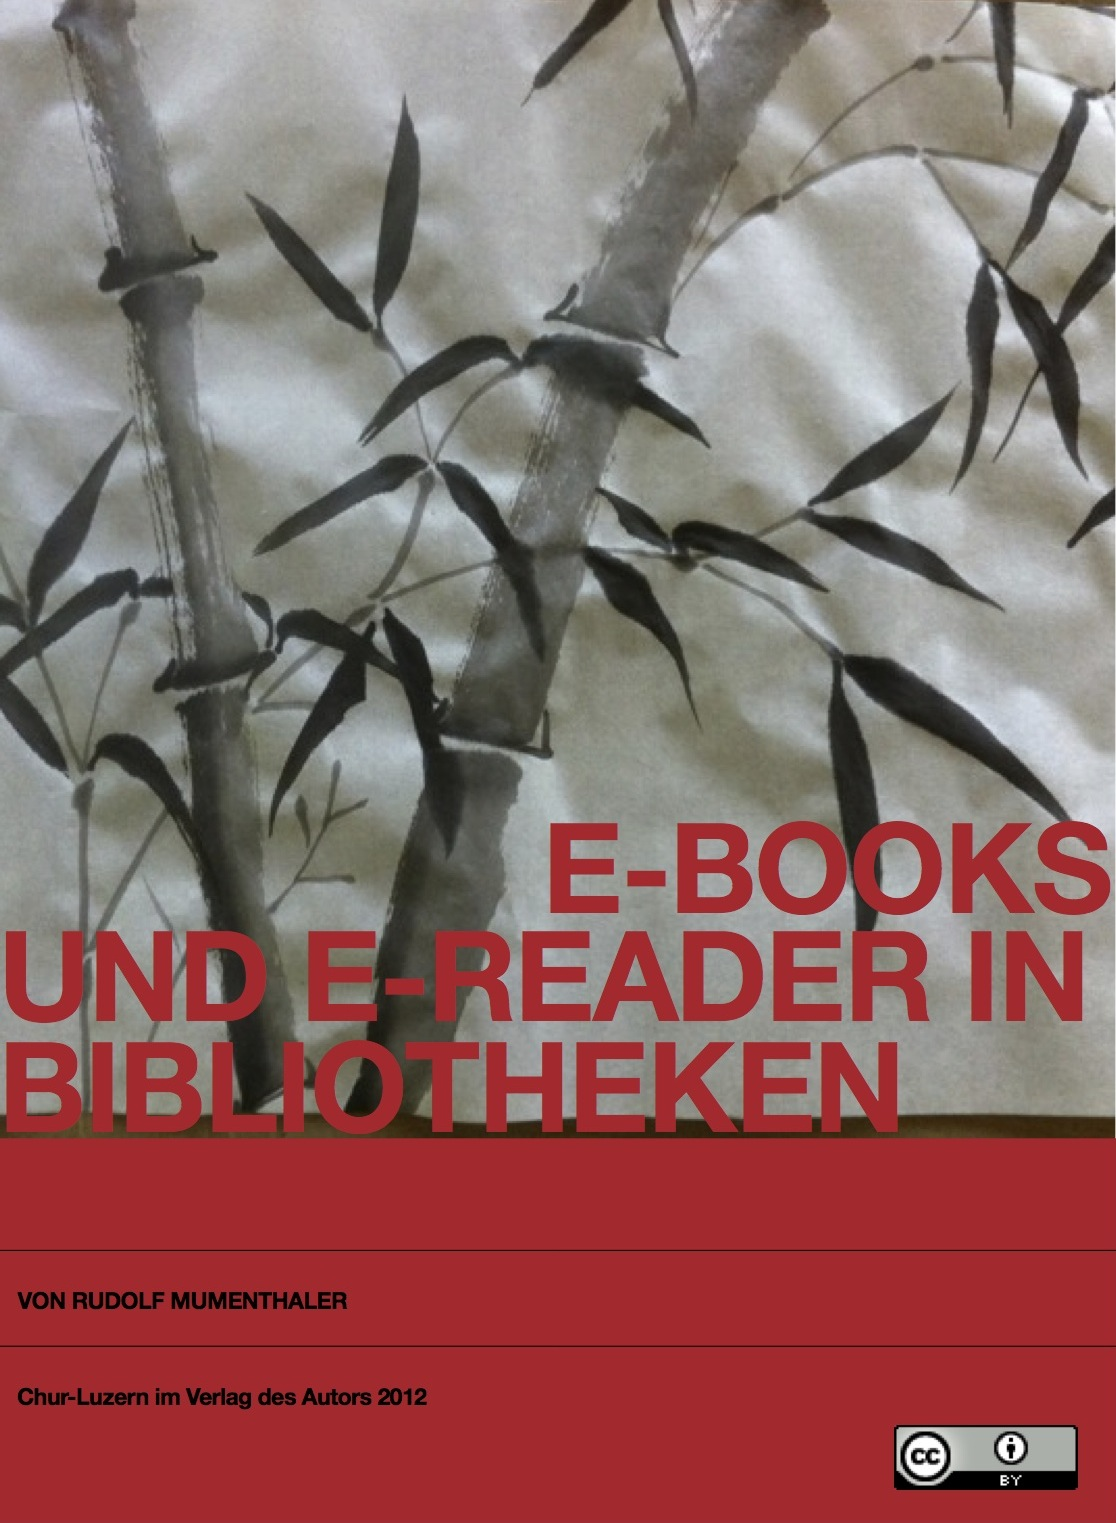 Cover image for E-Books und E-Reader in Bibliotheken